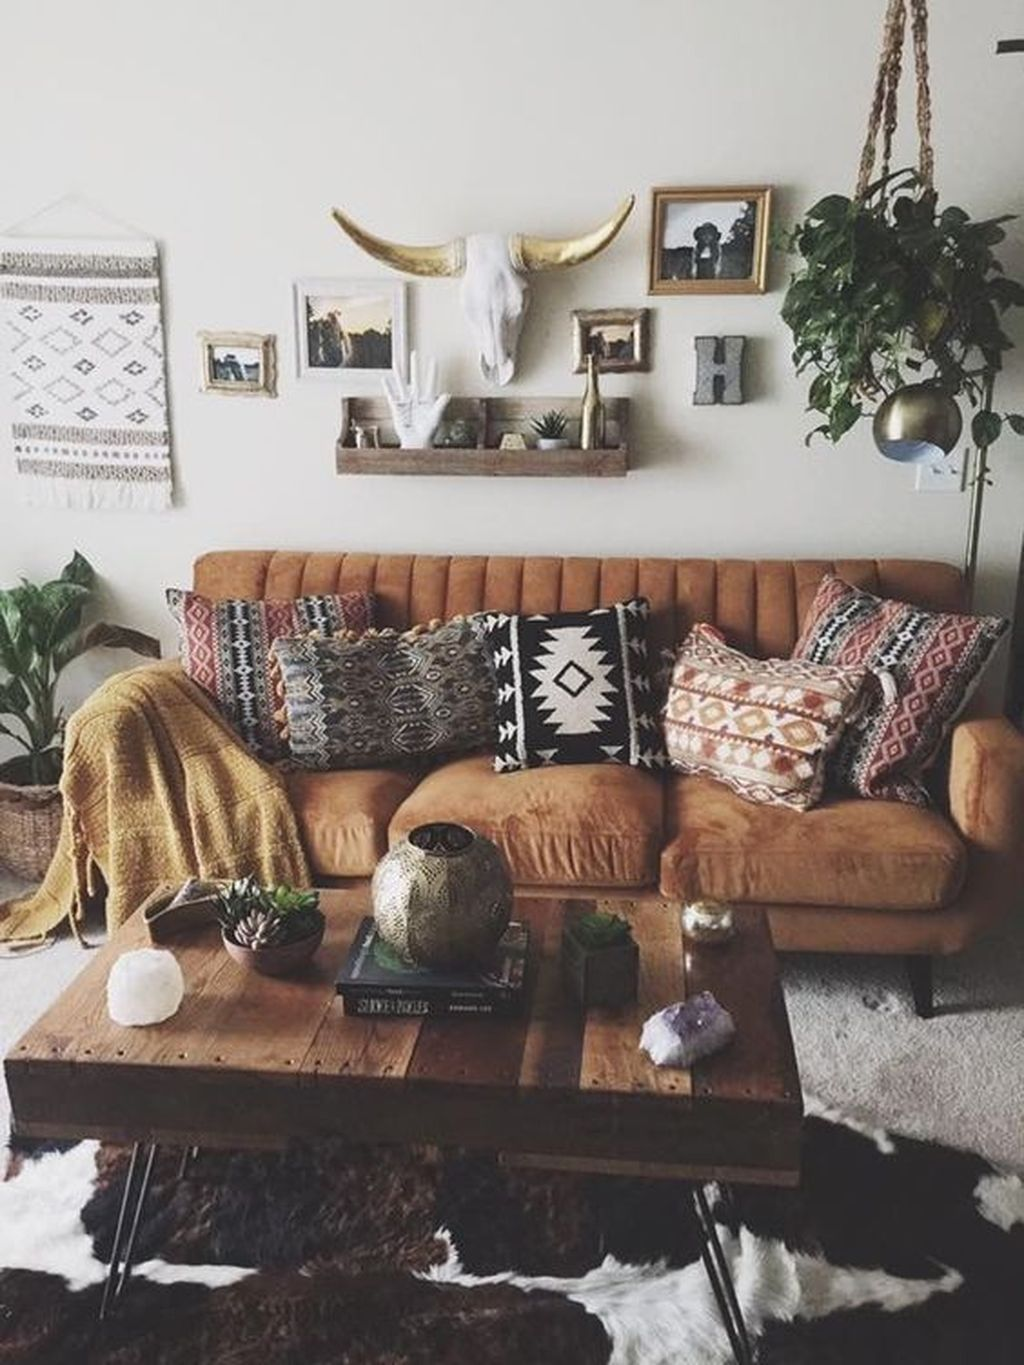 30 Rustic Living Room Decoration Ideas With Bohemian Style Western Living Room Decor Living Room Decor Rustic Living Room Decor Modern #western #style #living #room